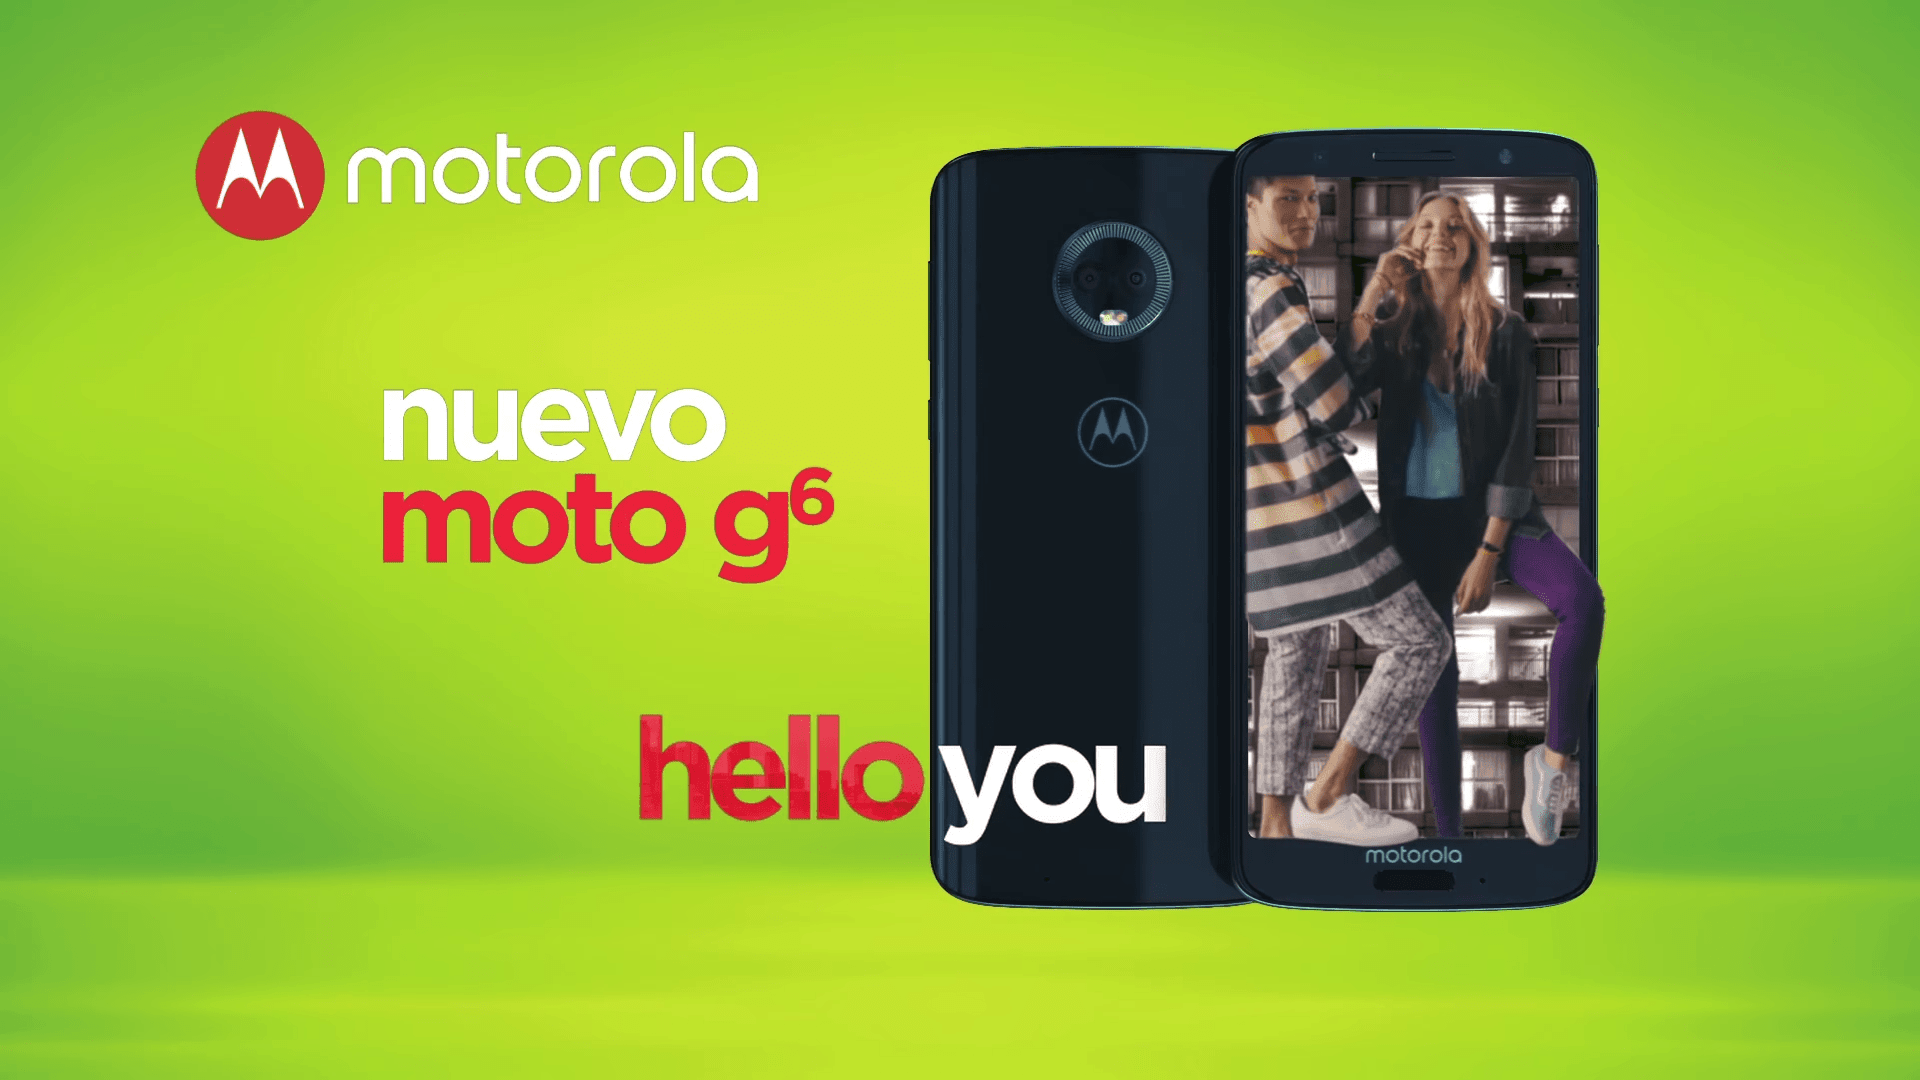 Motorola Hello You Moto G6